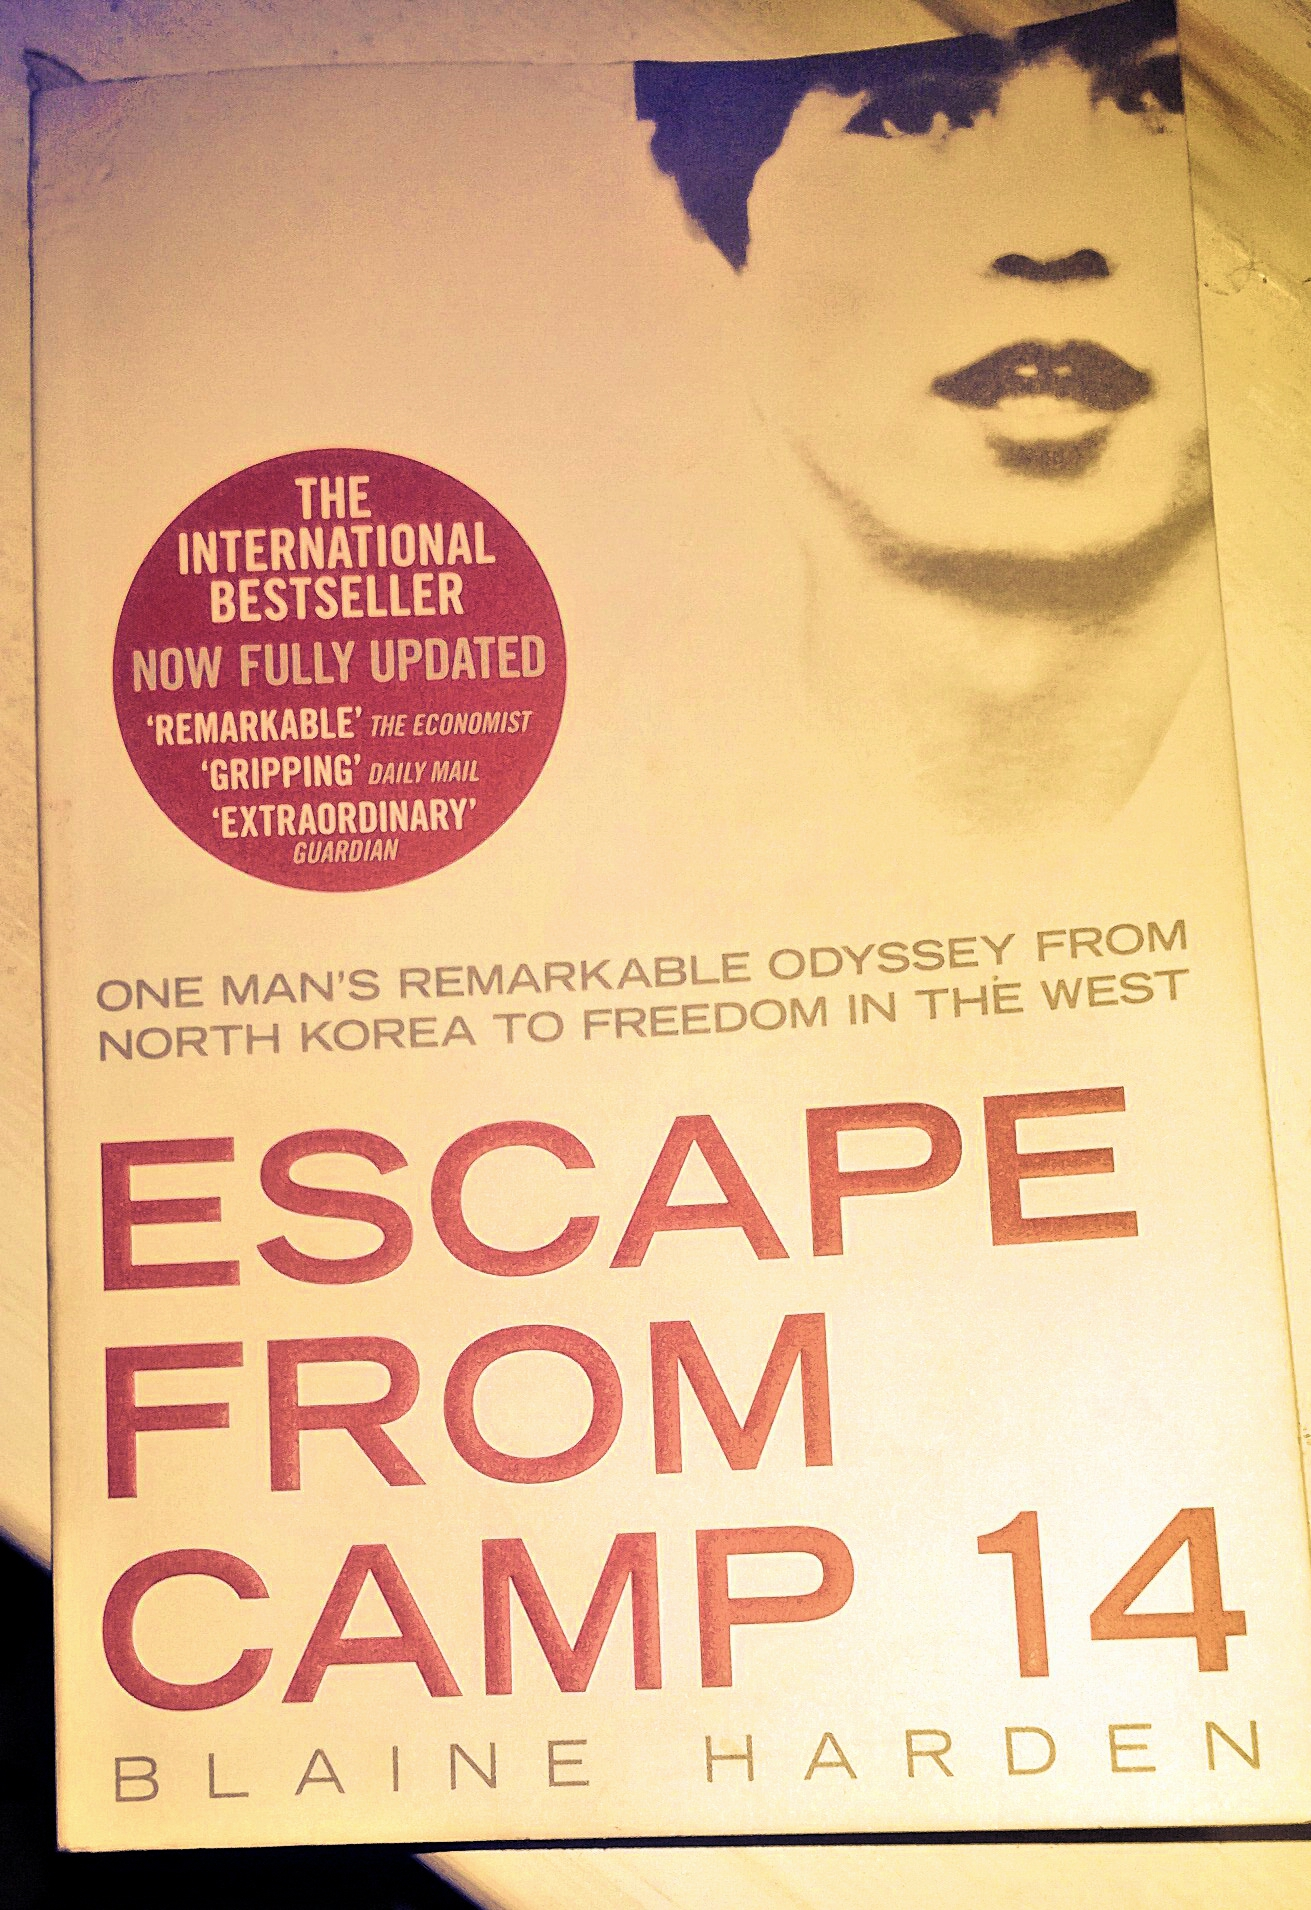 Blaine Harden - Escape From Camp 14